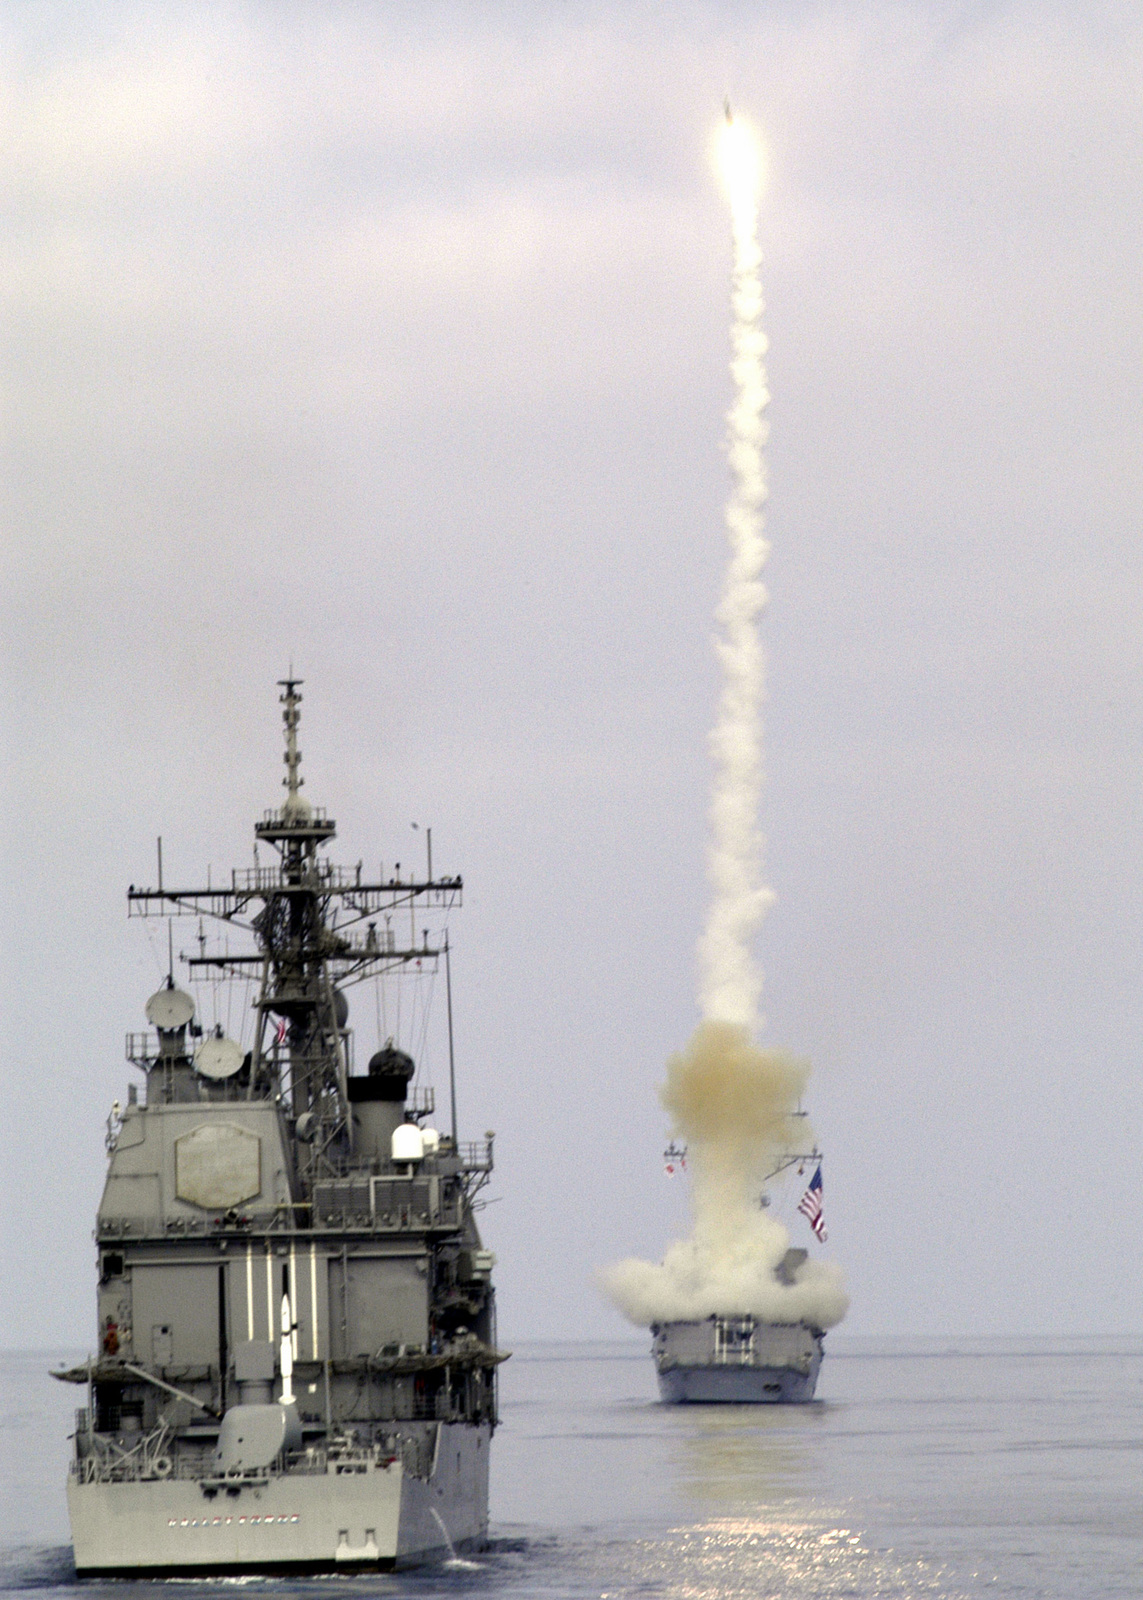 The US Navy Arleigh Burke Class Guided-Missile Destroyer USS PREBLE (DDG 88) fires a surface-to-air Standard Missile-2 (SM-2) missile while conducting missile-firing exercises off the coast of Southern California. The USN Ticonderoga Class Guided Missile Cruiser, also participating in the exercise, observes the launch